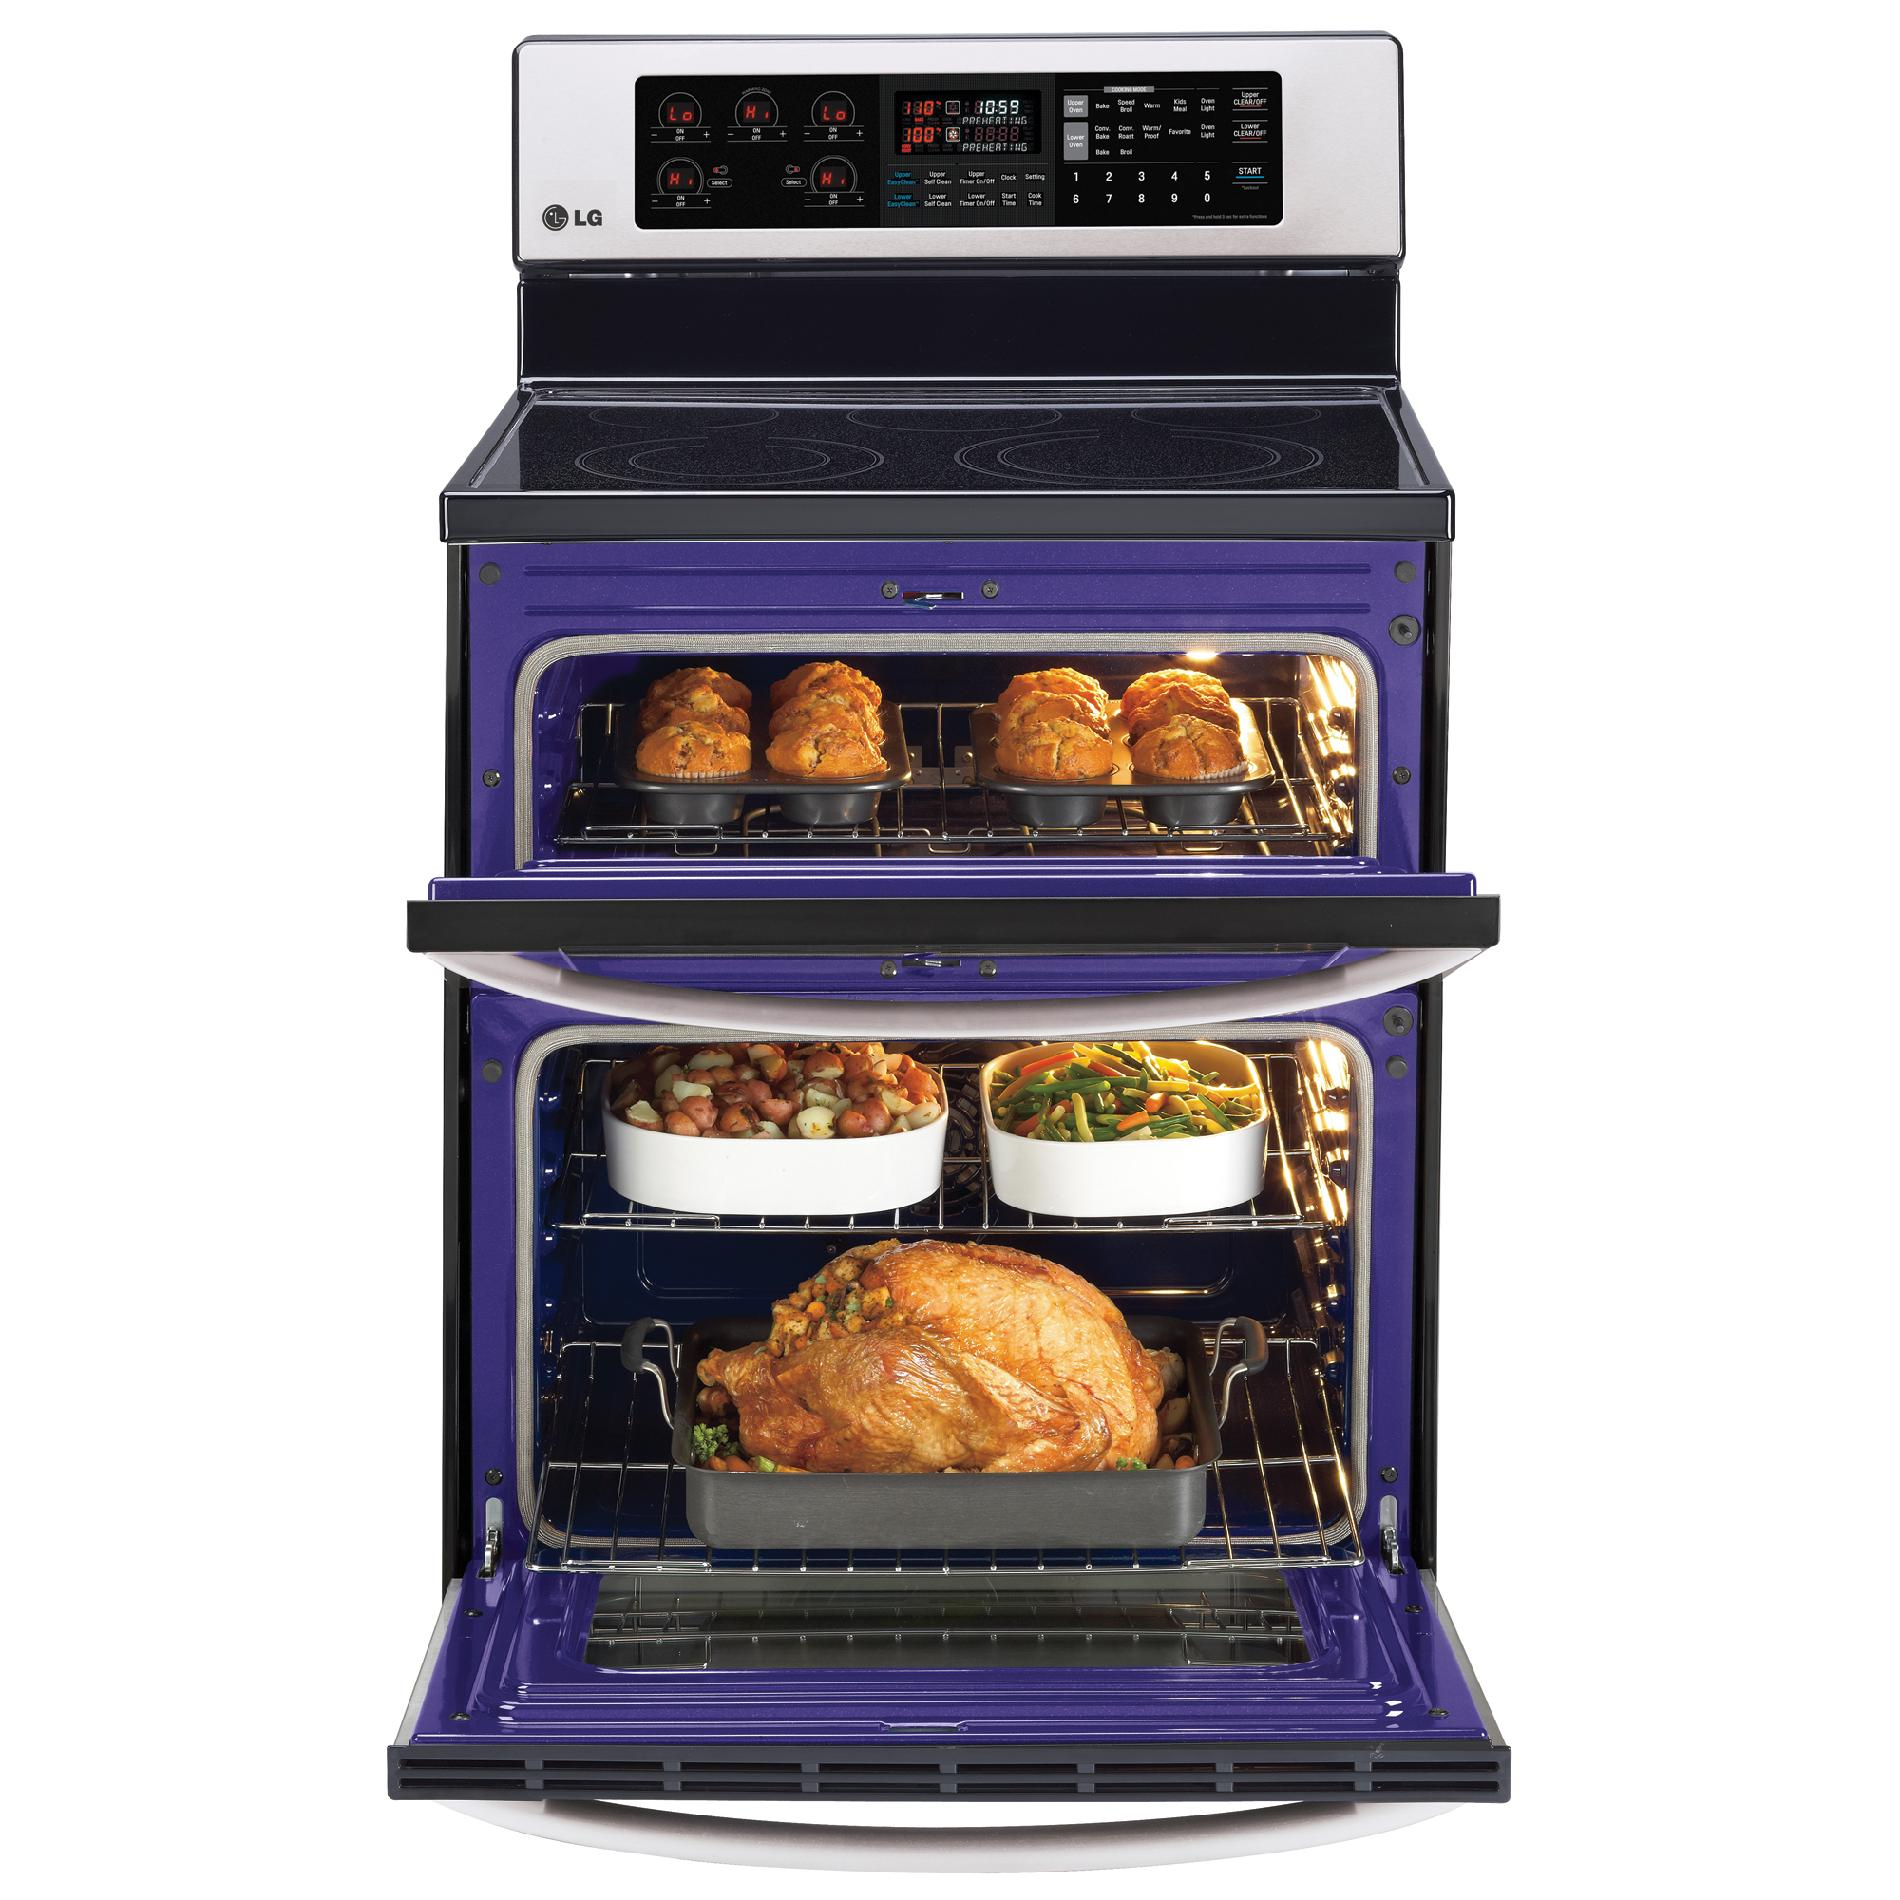 LG 6.7 cu. ft. Double-Oven Electric Range w/Infrared Grill - Stainless Steel